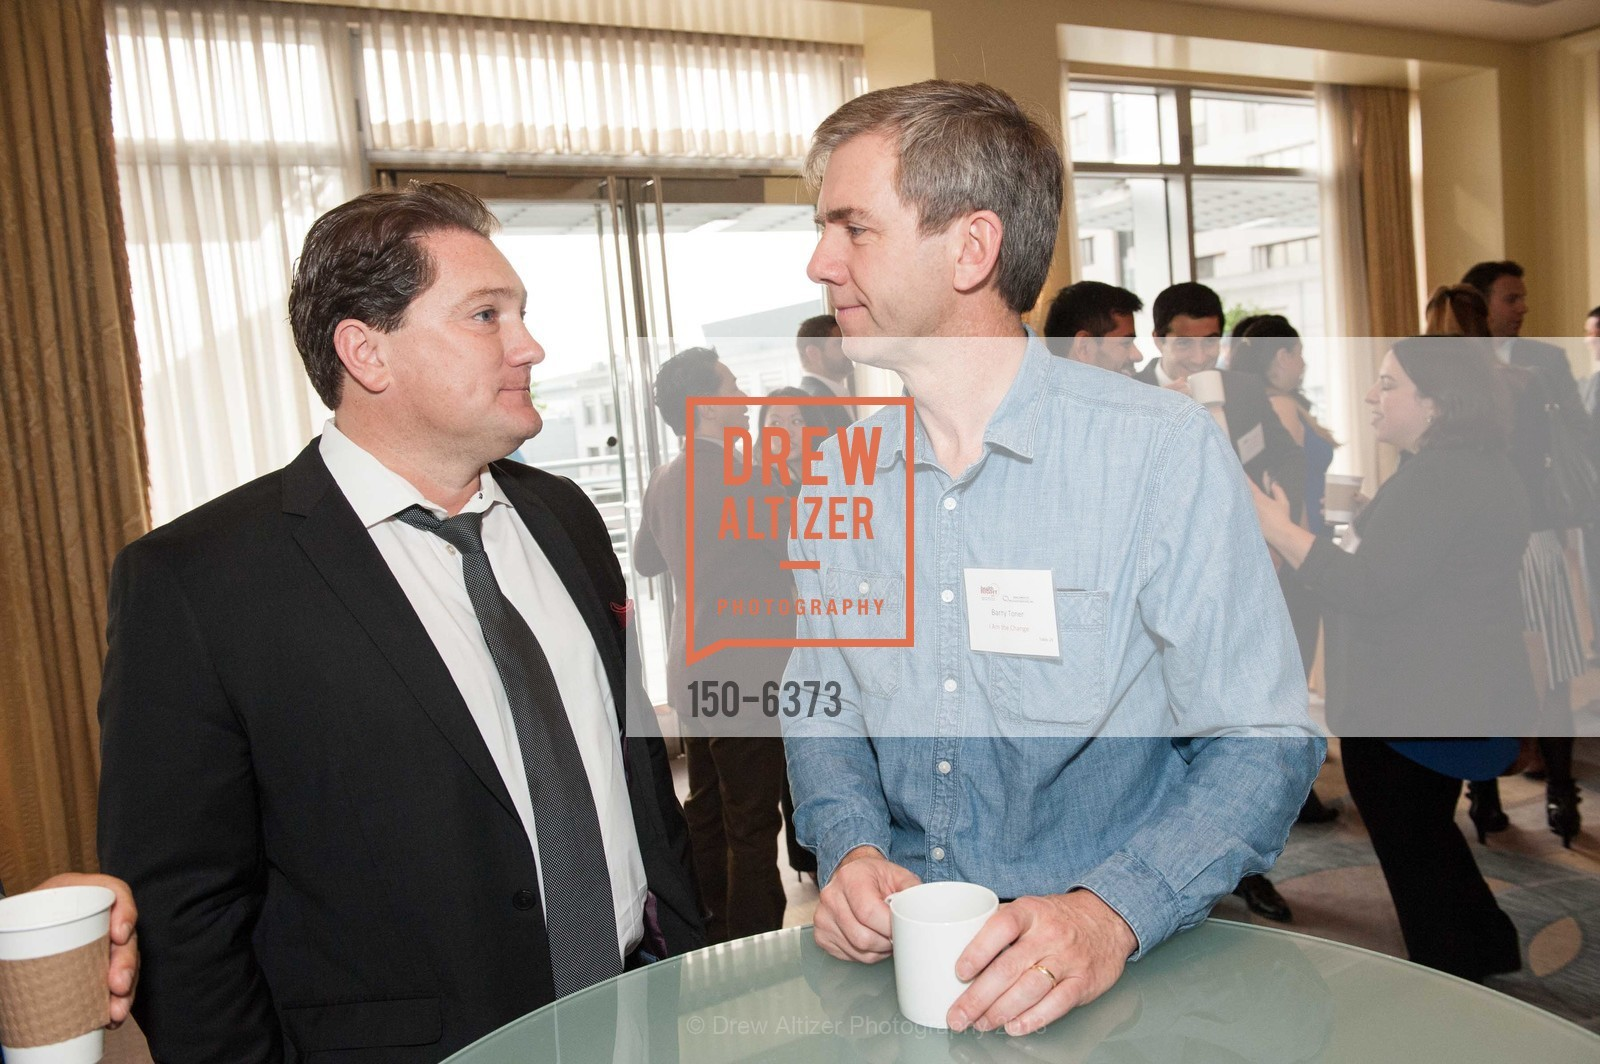 Liam Mayclem, Barry Toner, HEALTH RIGHT 360:  Be the Change 2013, US, November 8th, 2013,Drew Altizer, Drew Altizer Photography, full-service agency, private events, San Francisco photographer, photographer california